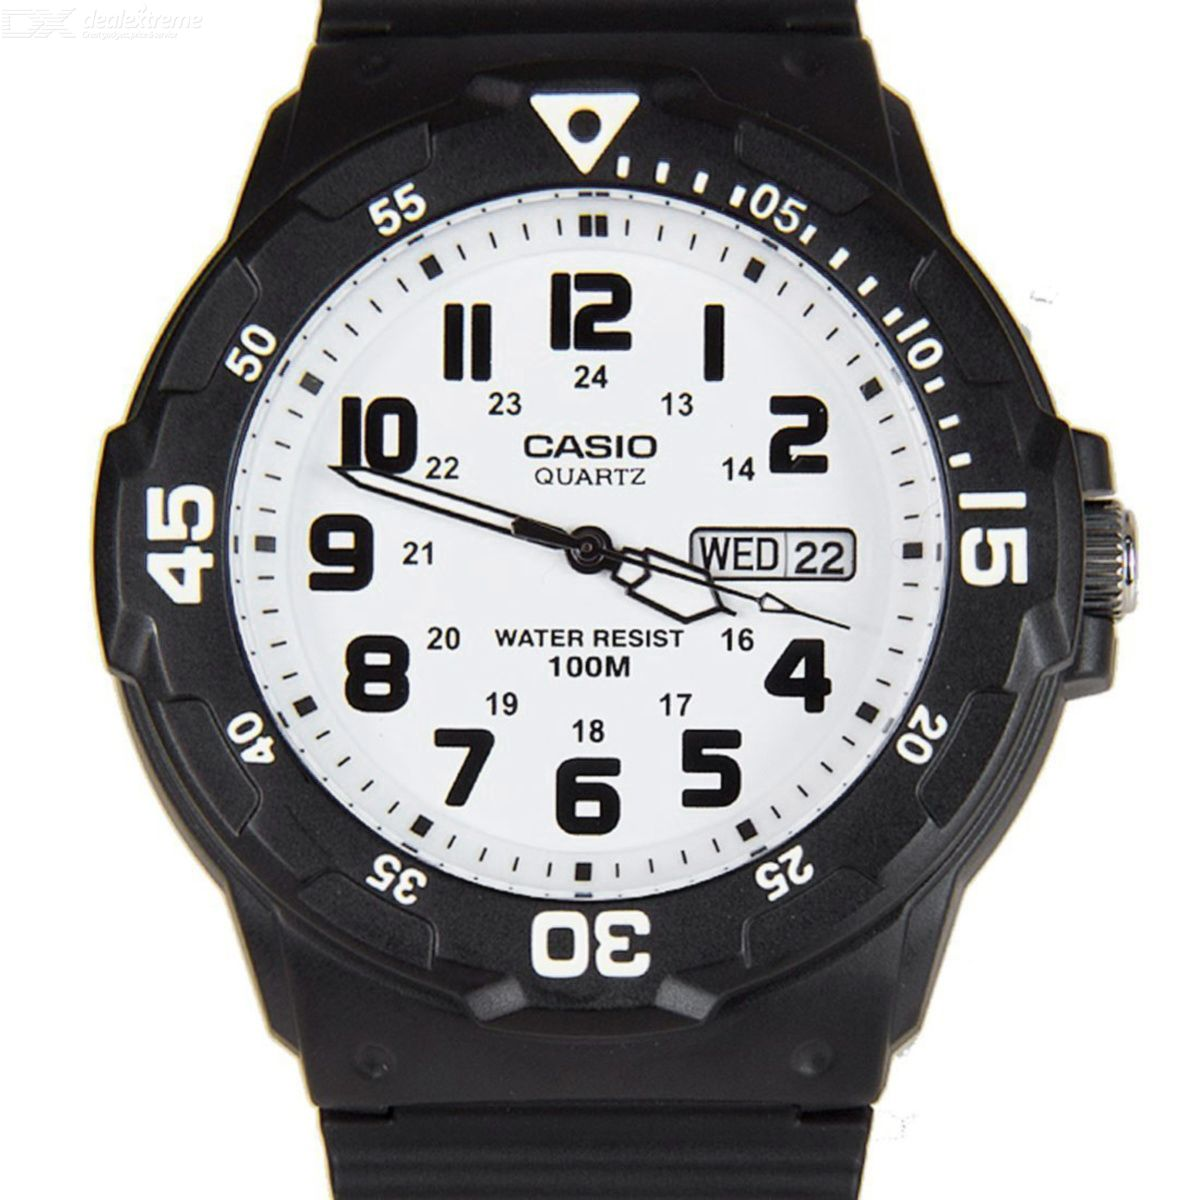 CASIO MRW-200H-7BVDF Men's Analog Watch - Black + White (Without Box)